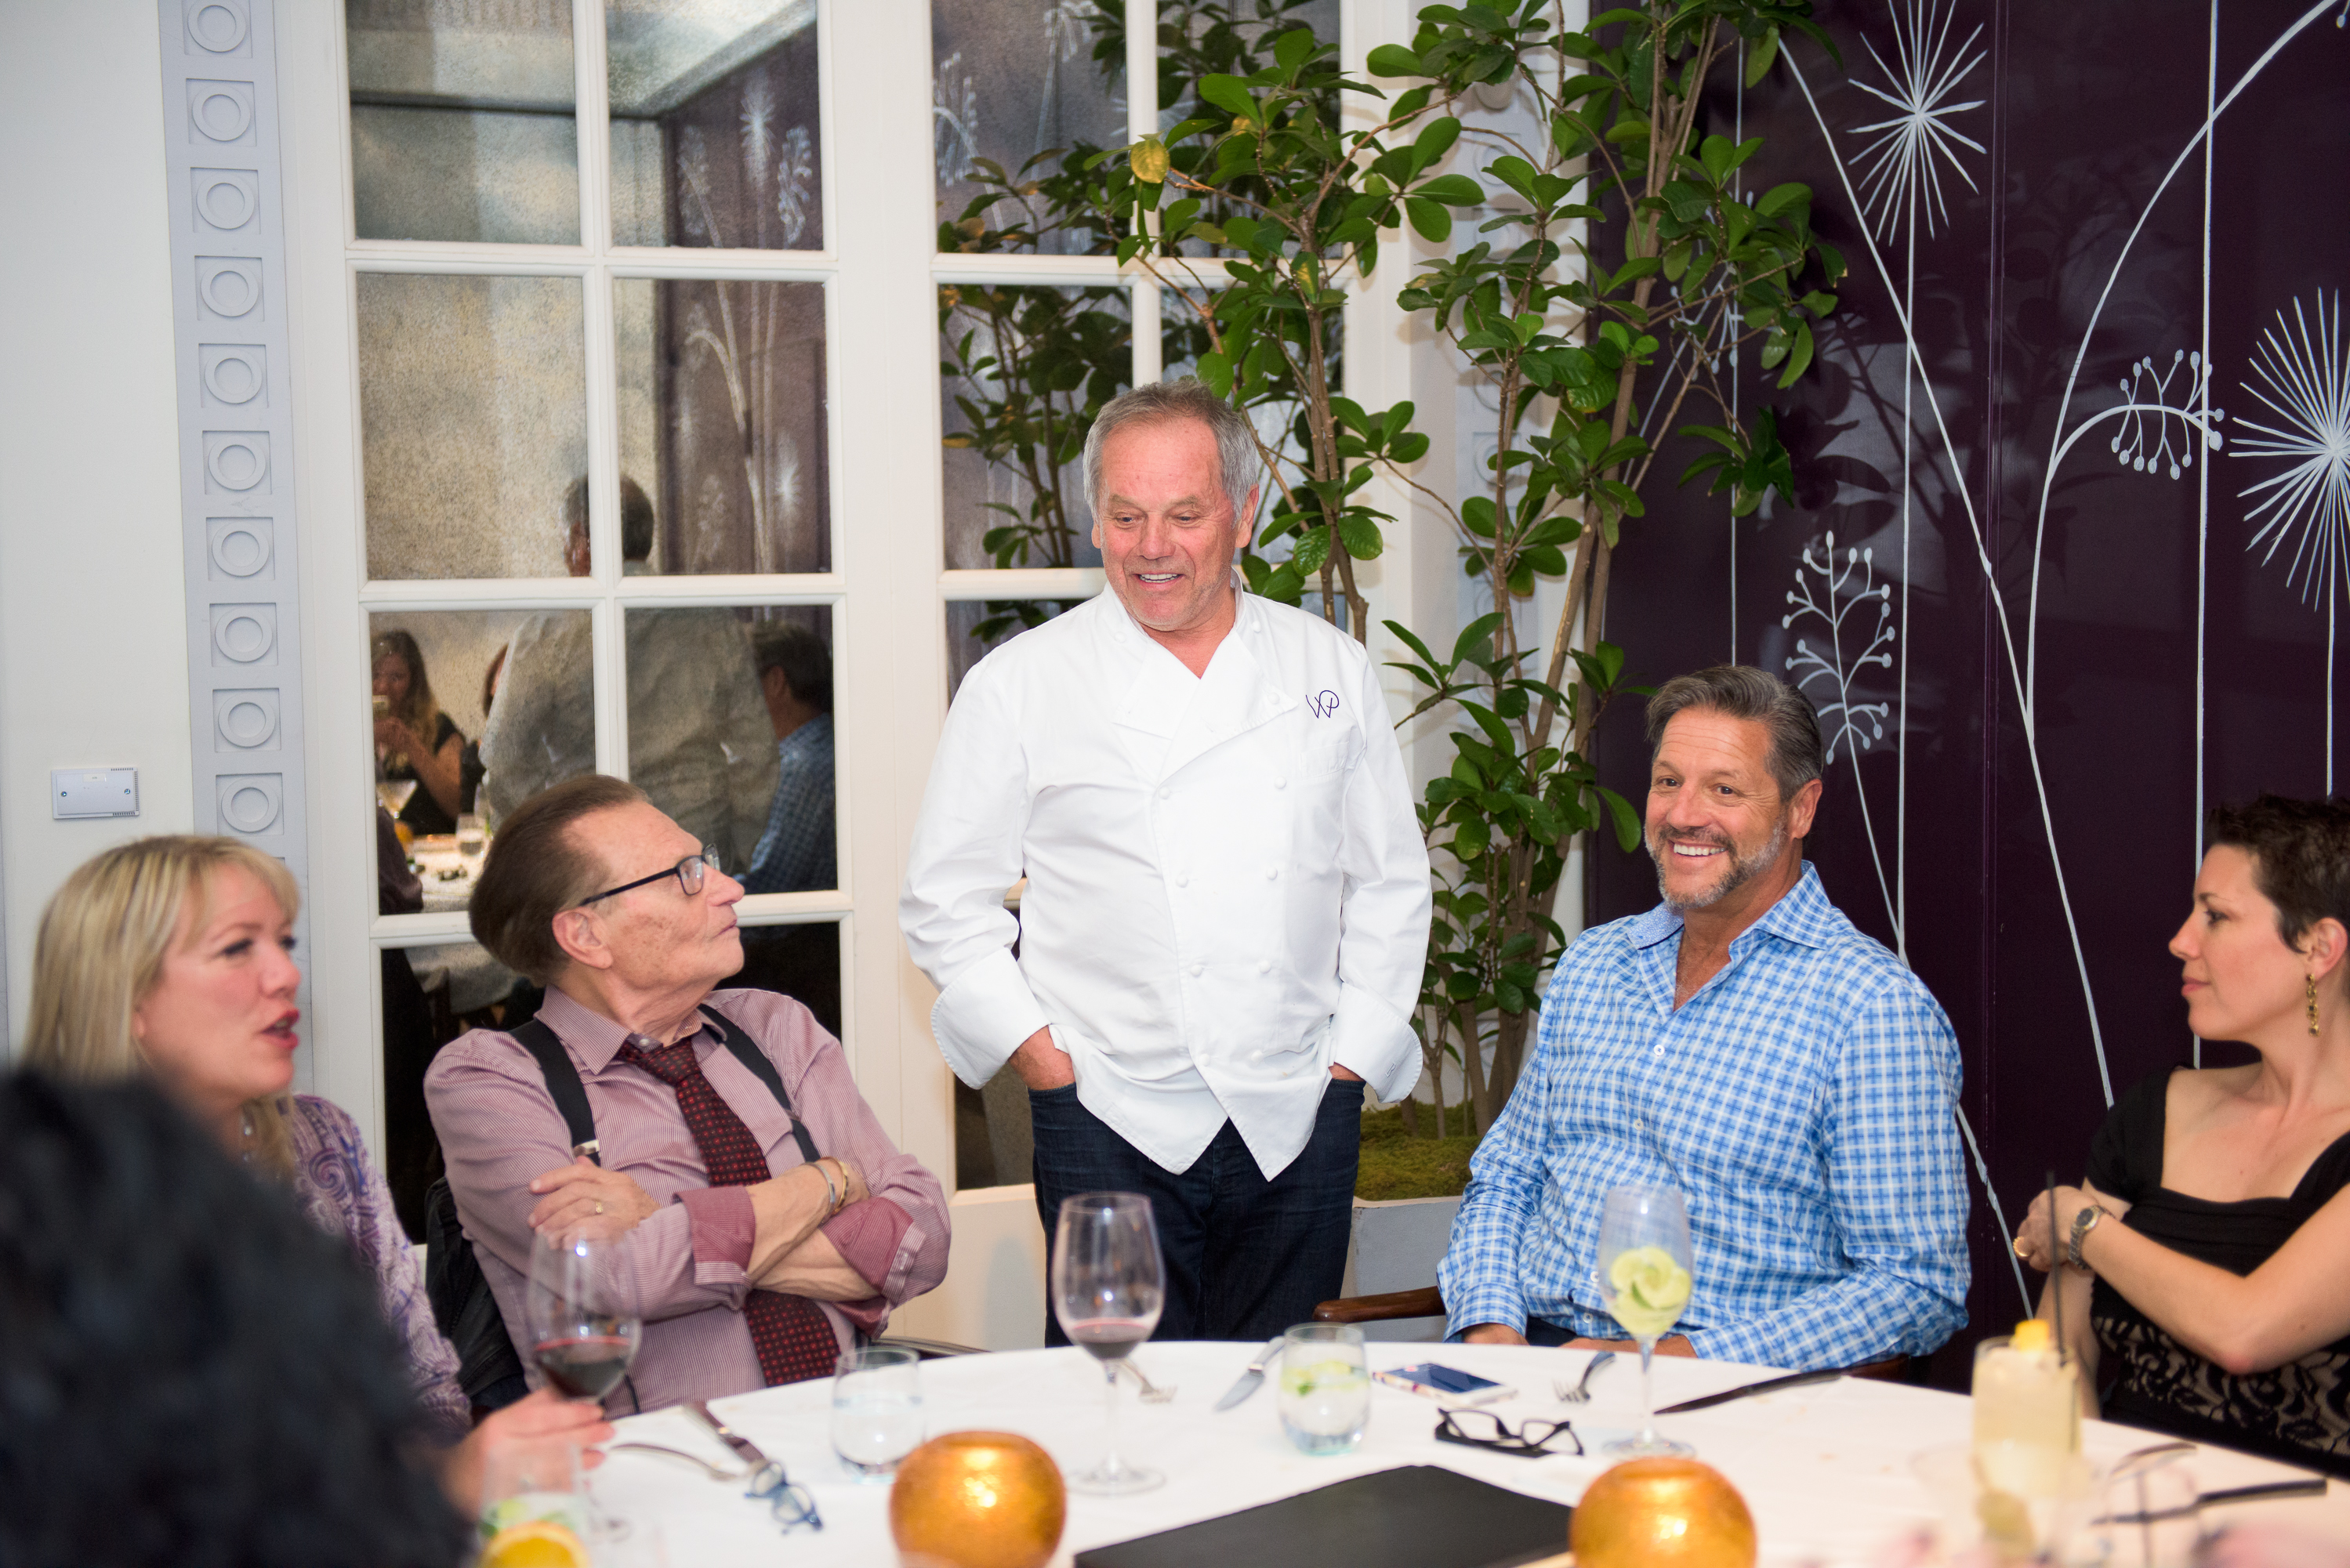 John with Wolfgang Puck, Larry King and Guests